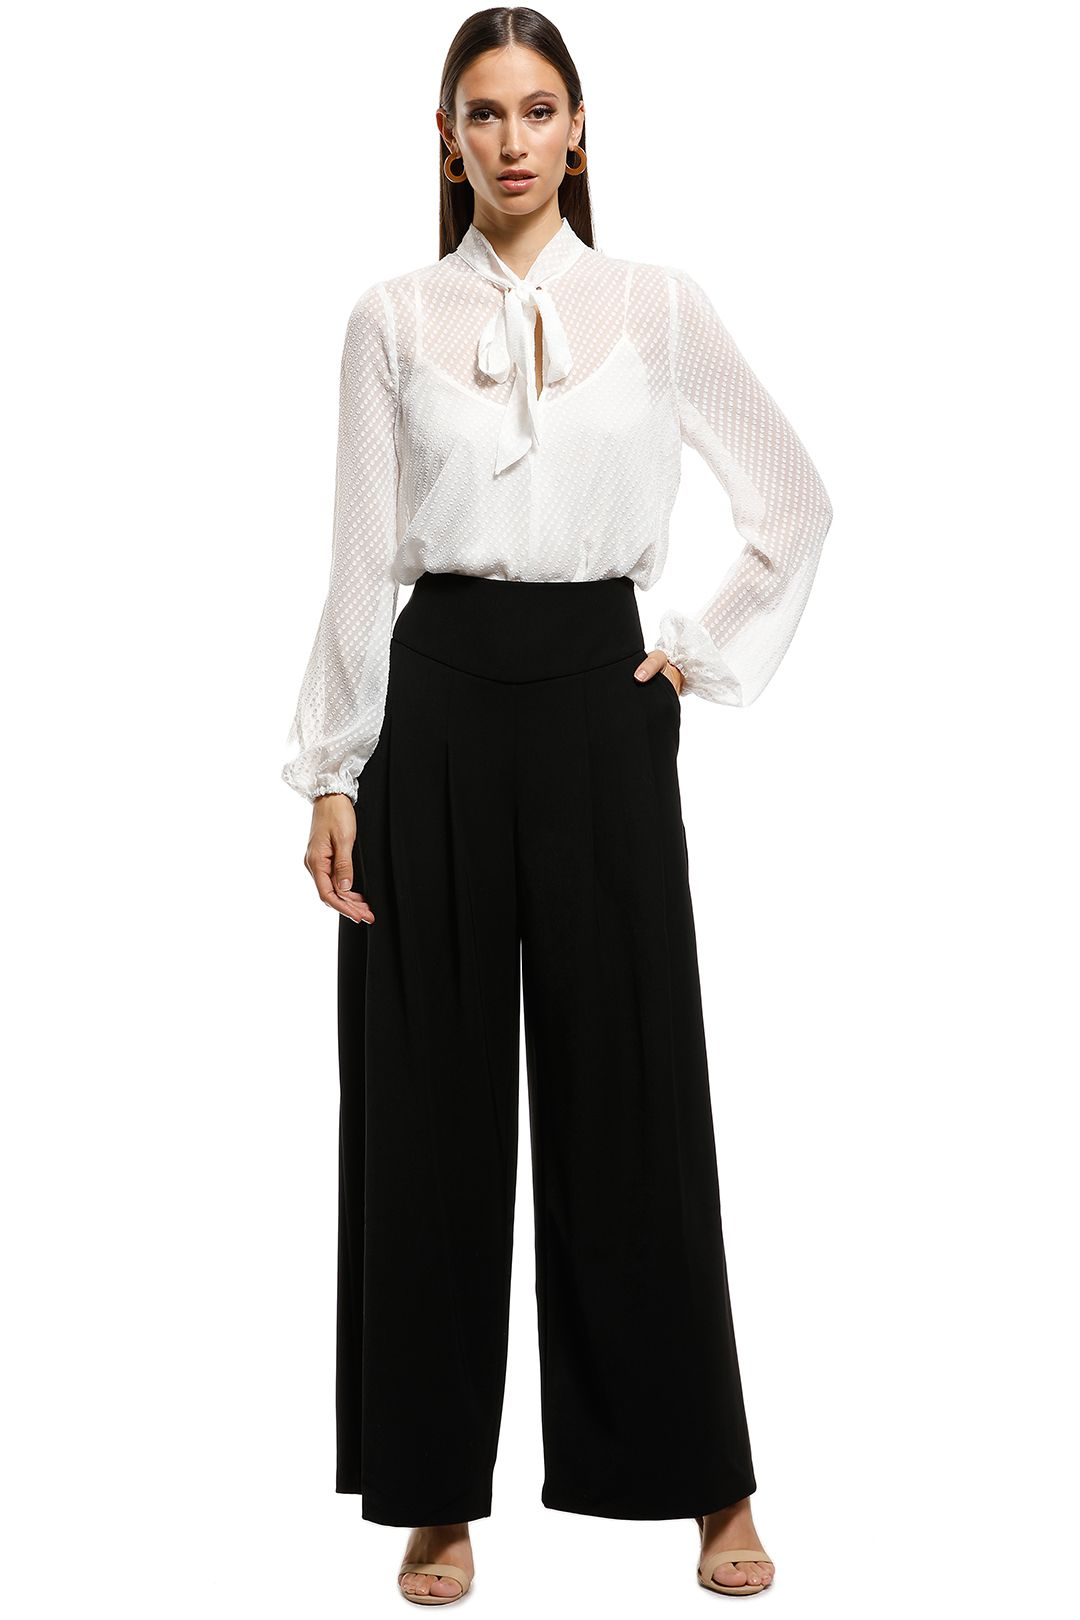 Cooper St - Romeo Flared Pant - Black - Front